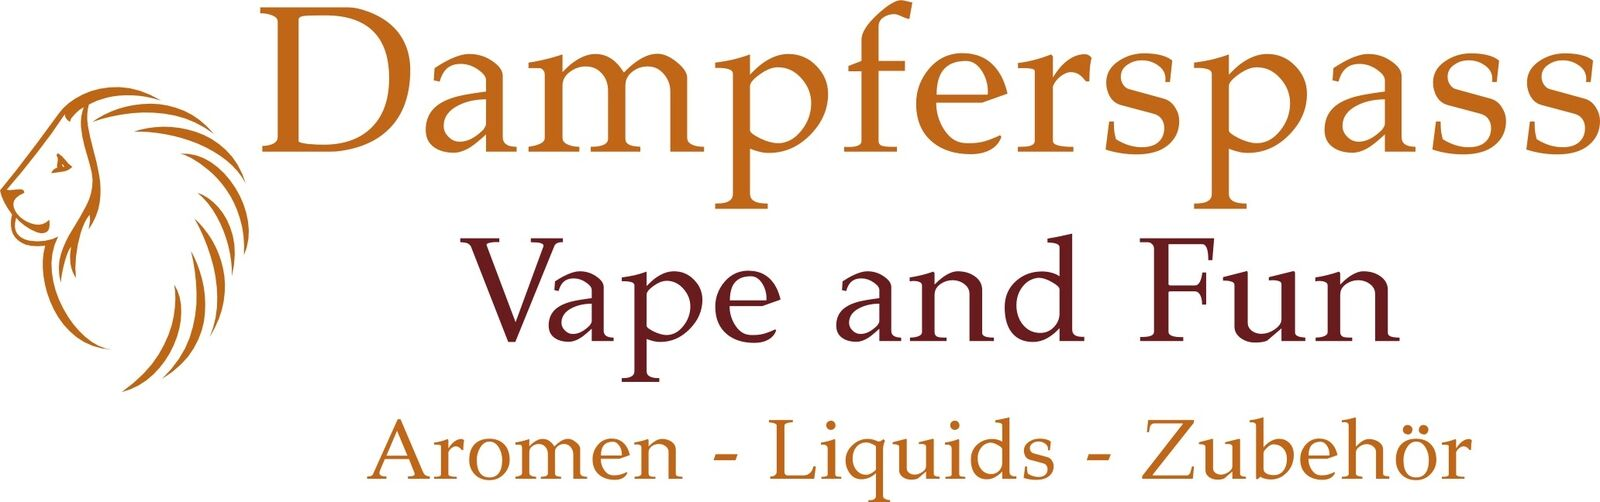 Dampferspass - Vape and Fun